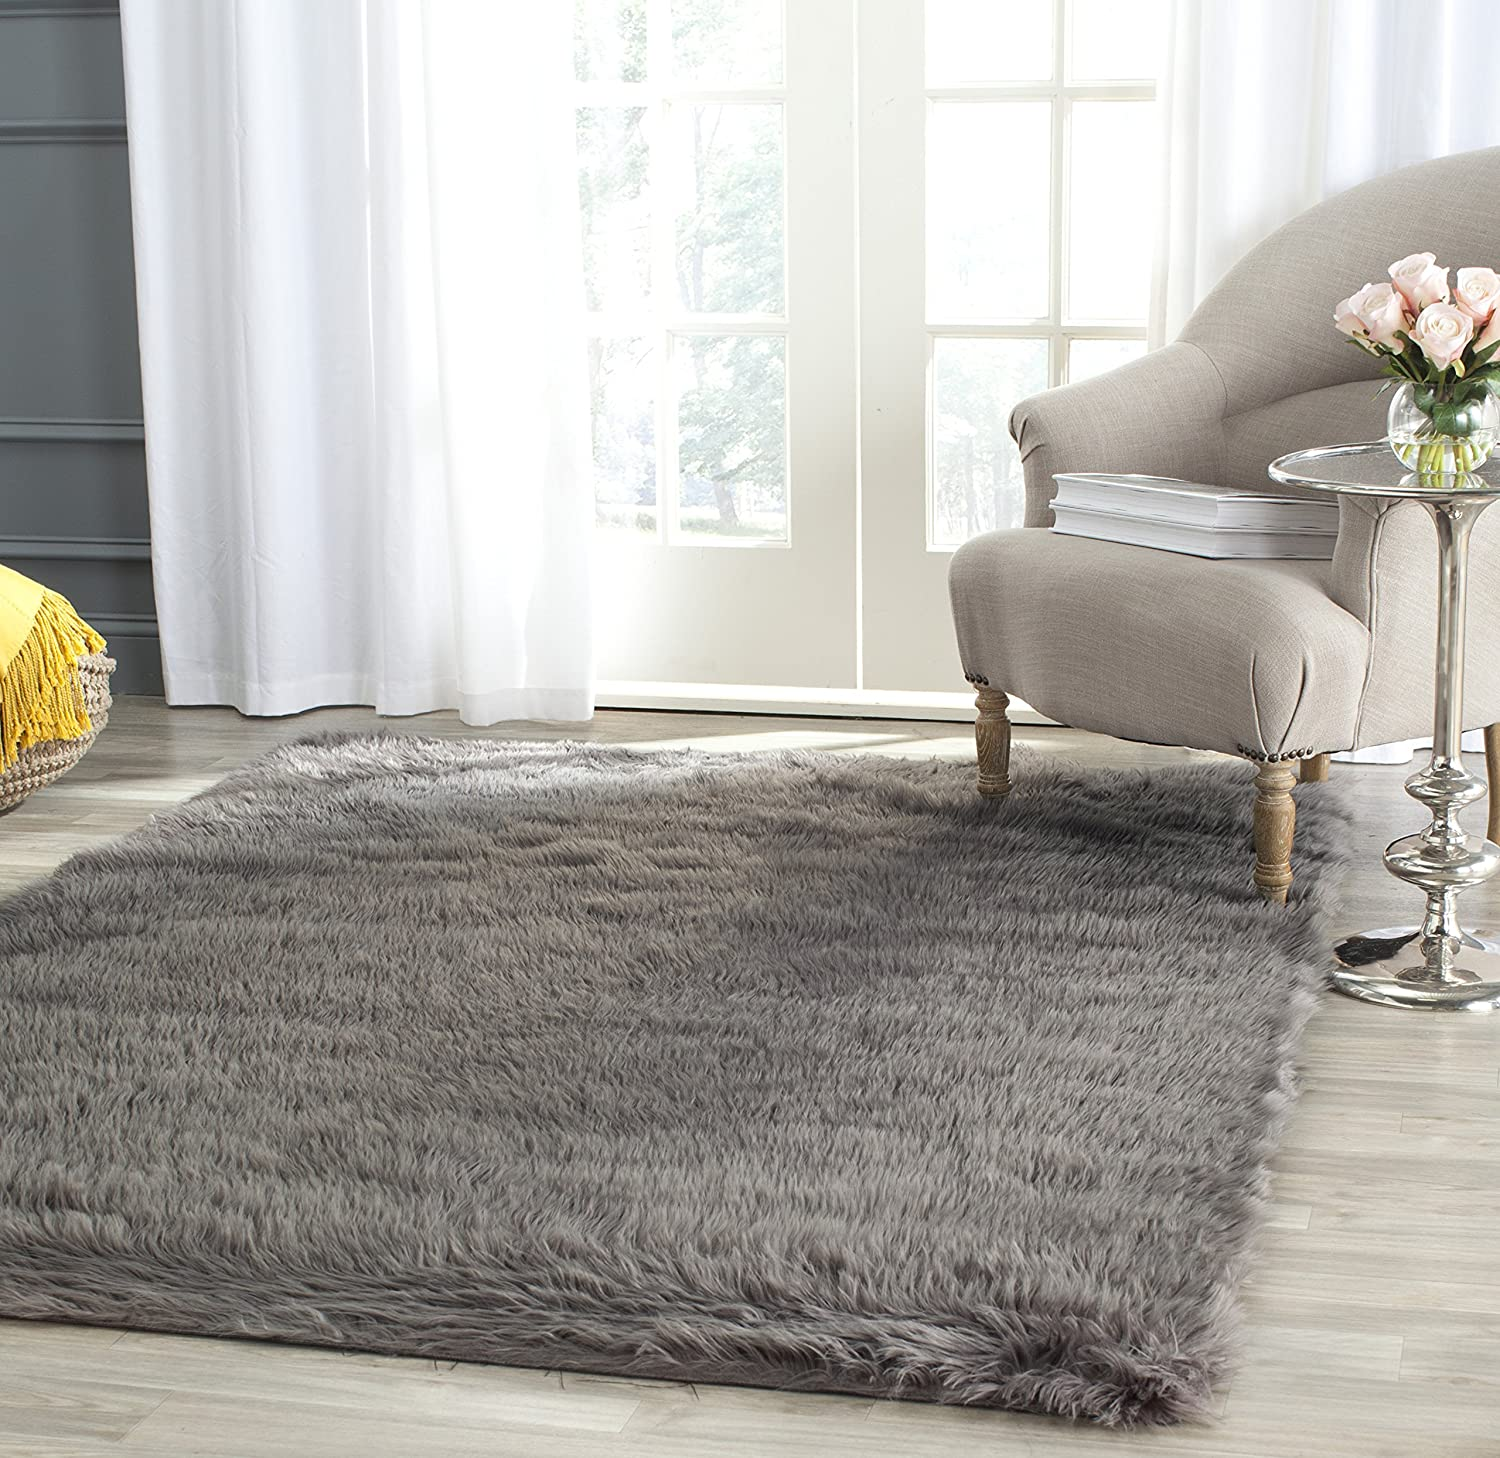 rug modern plain room machine mat itm decor shaggy cream vista rugs fluffy large made for pile home living